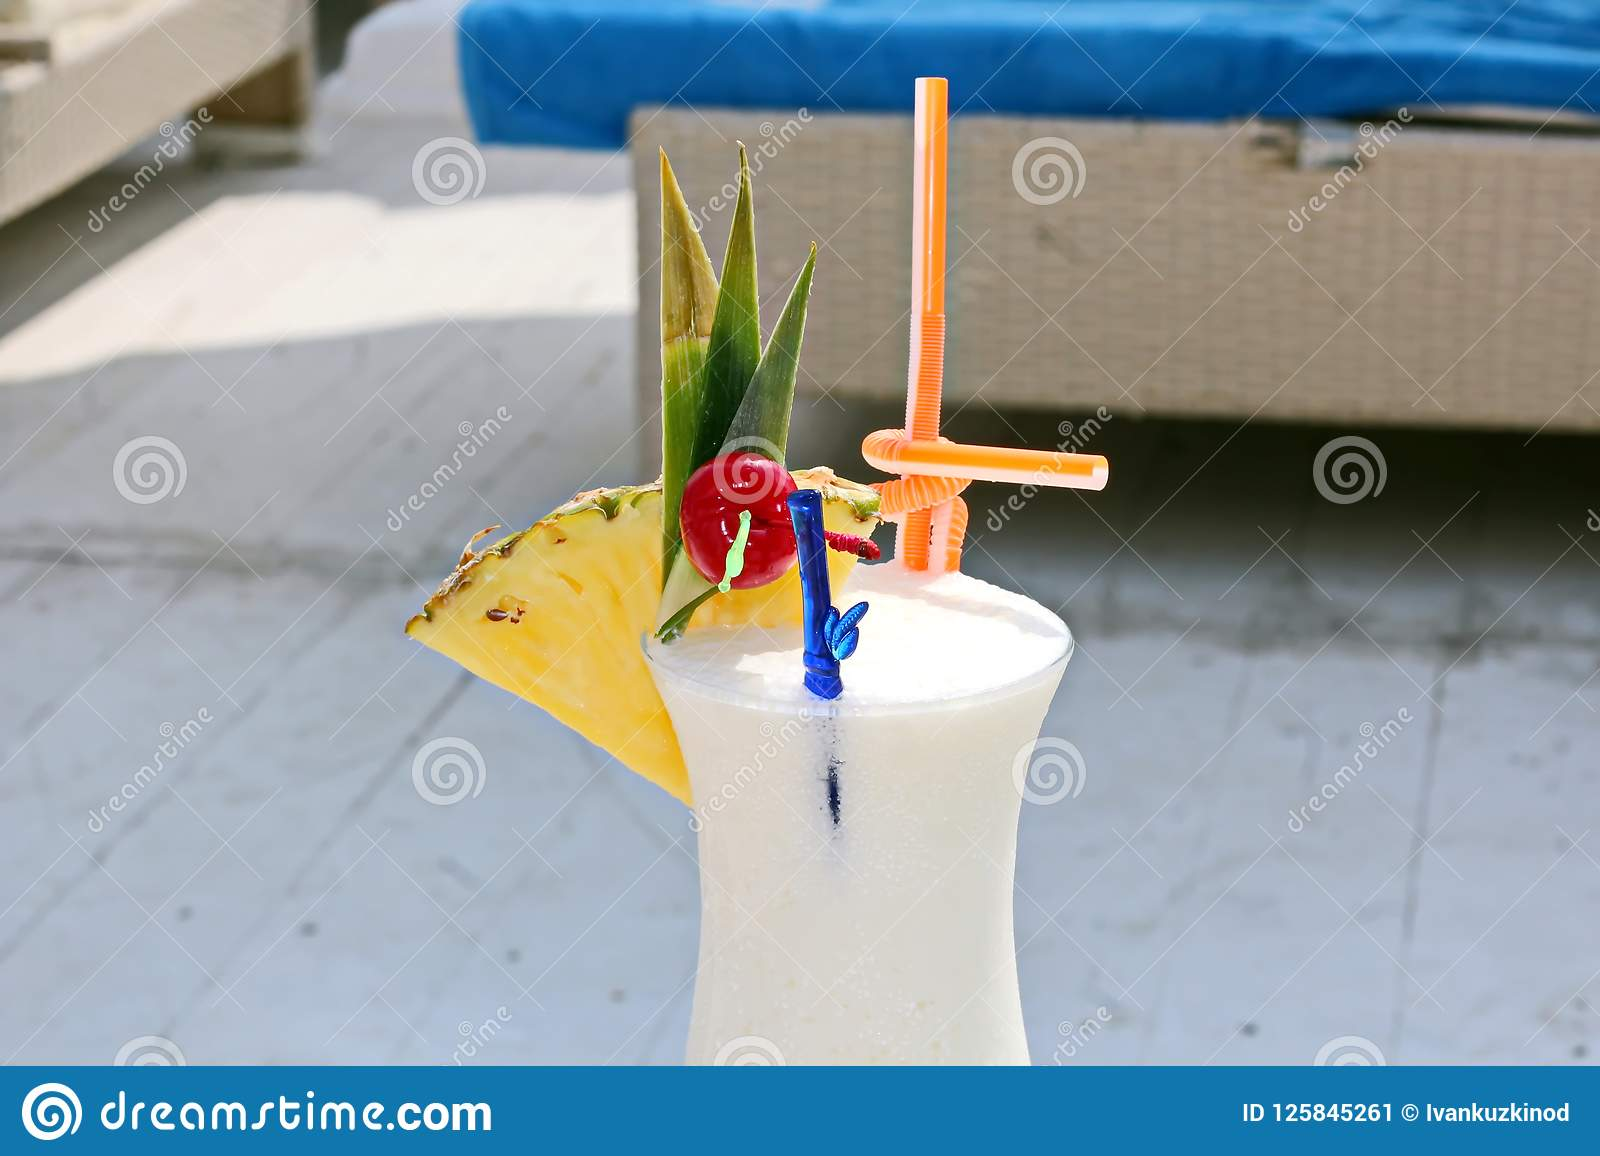 Close-up view of a cold glass of milkshake decorated with tropical fruits and a glass of wine with a lemon inside.